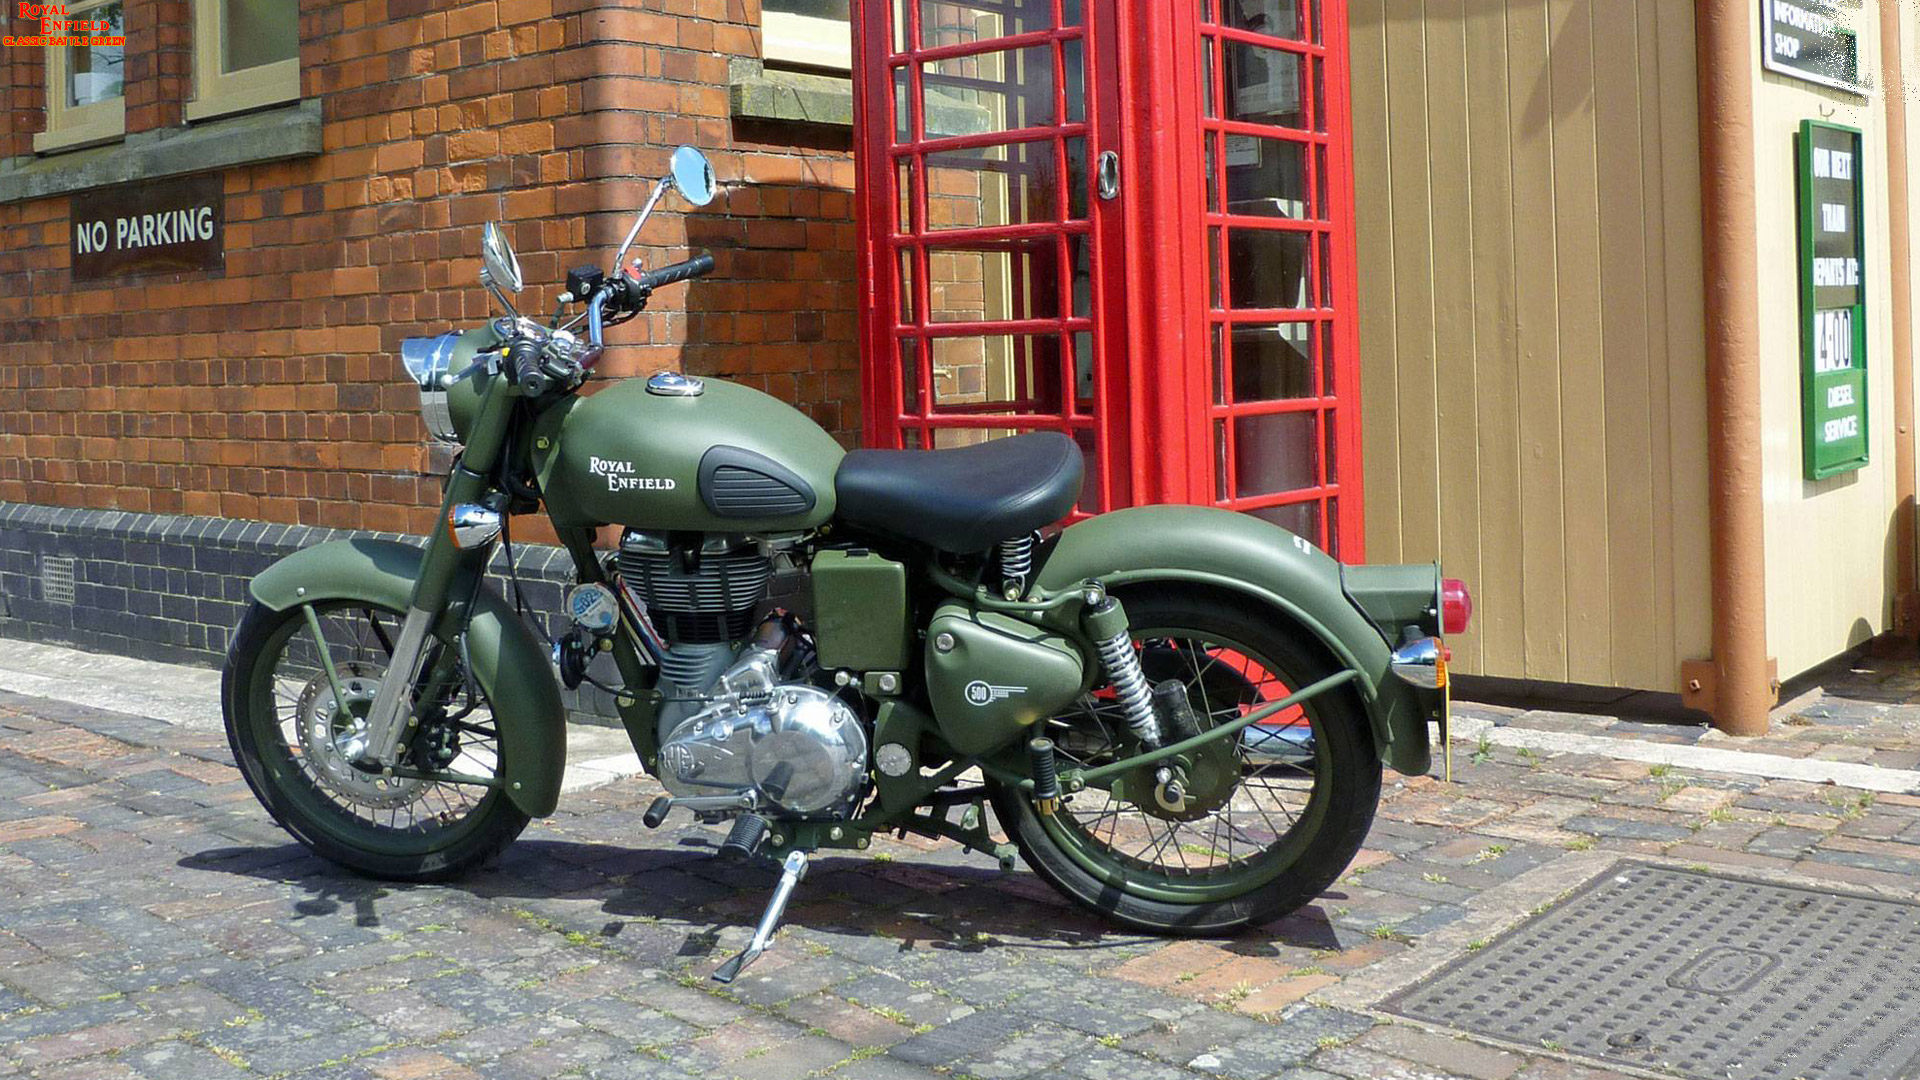 Royal Enfield Battle Green Wallpaper